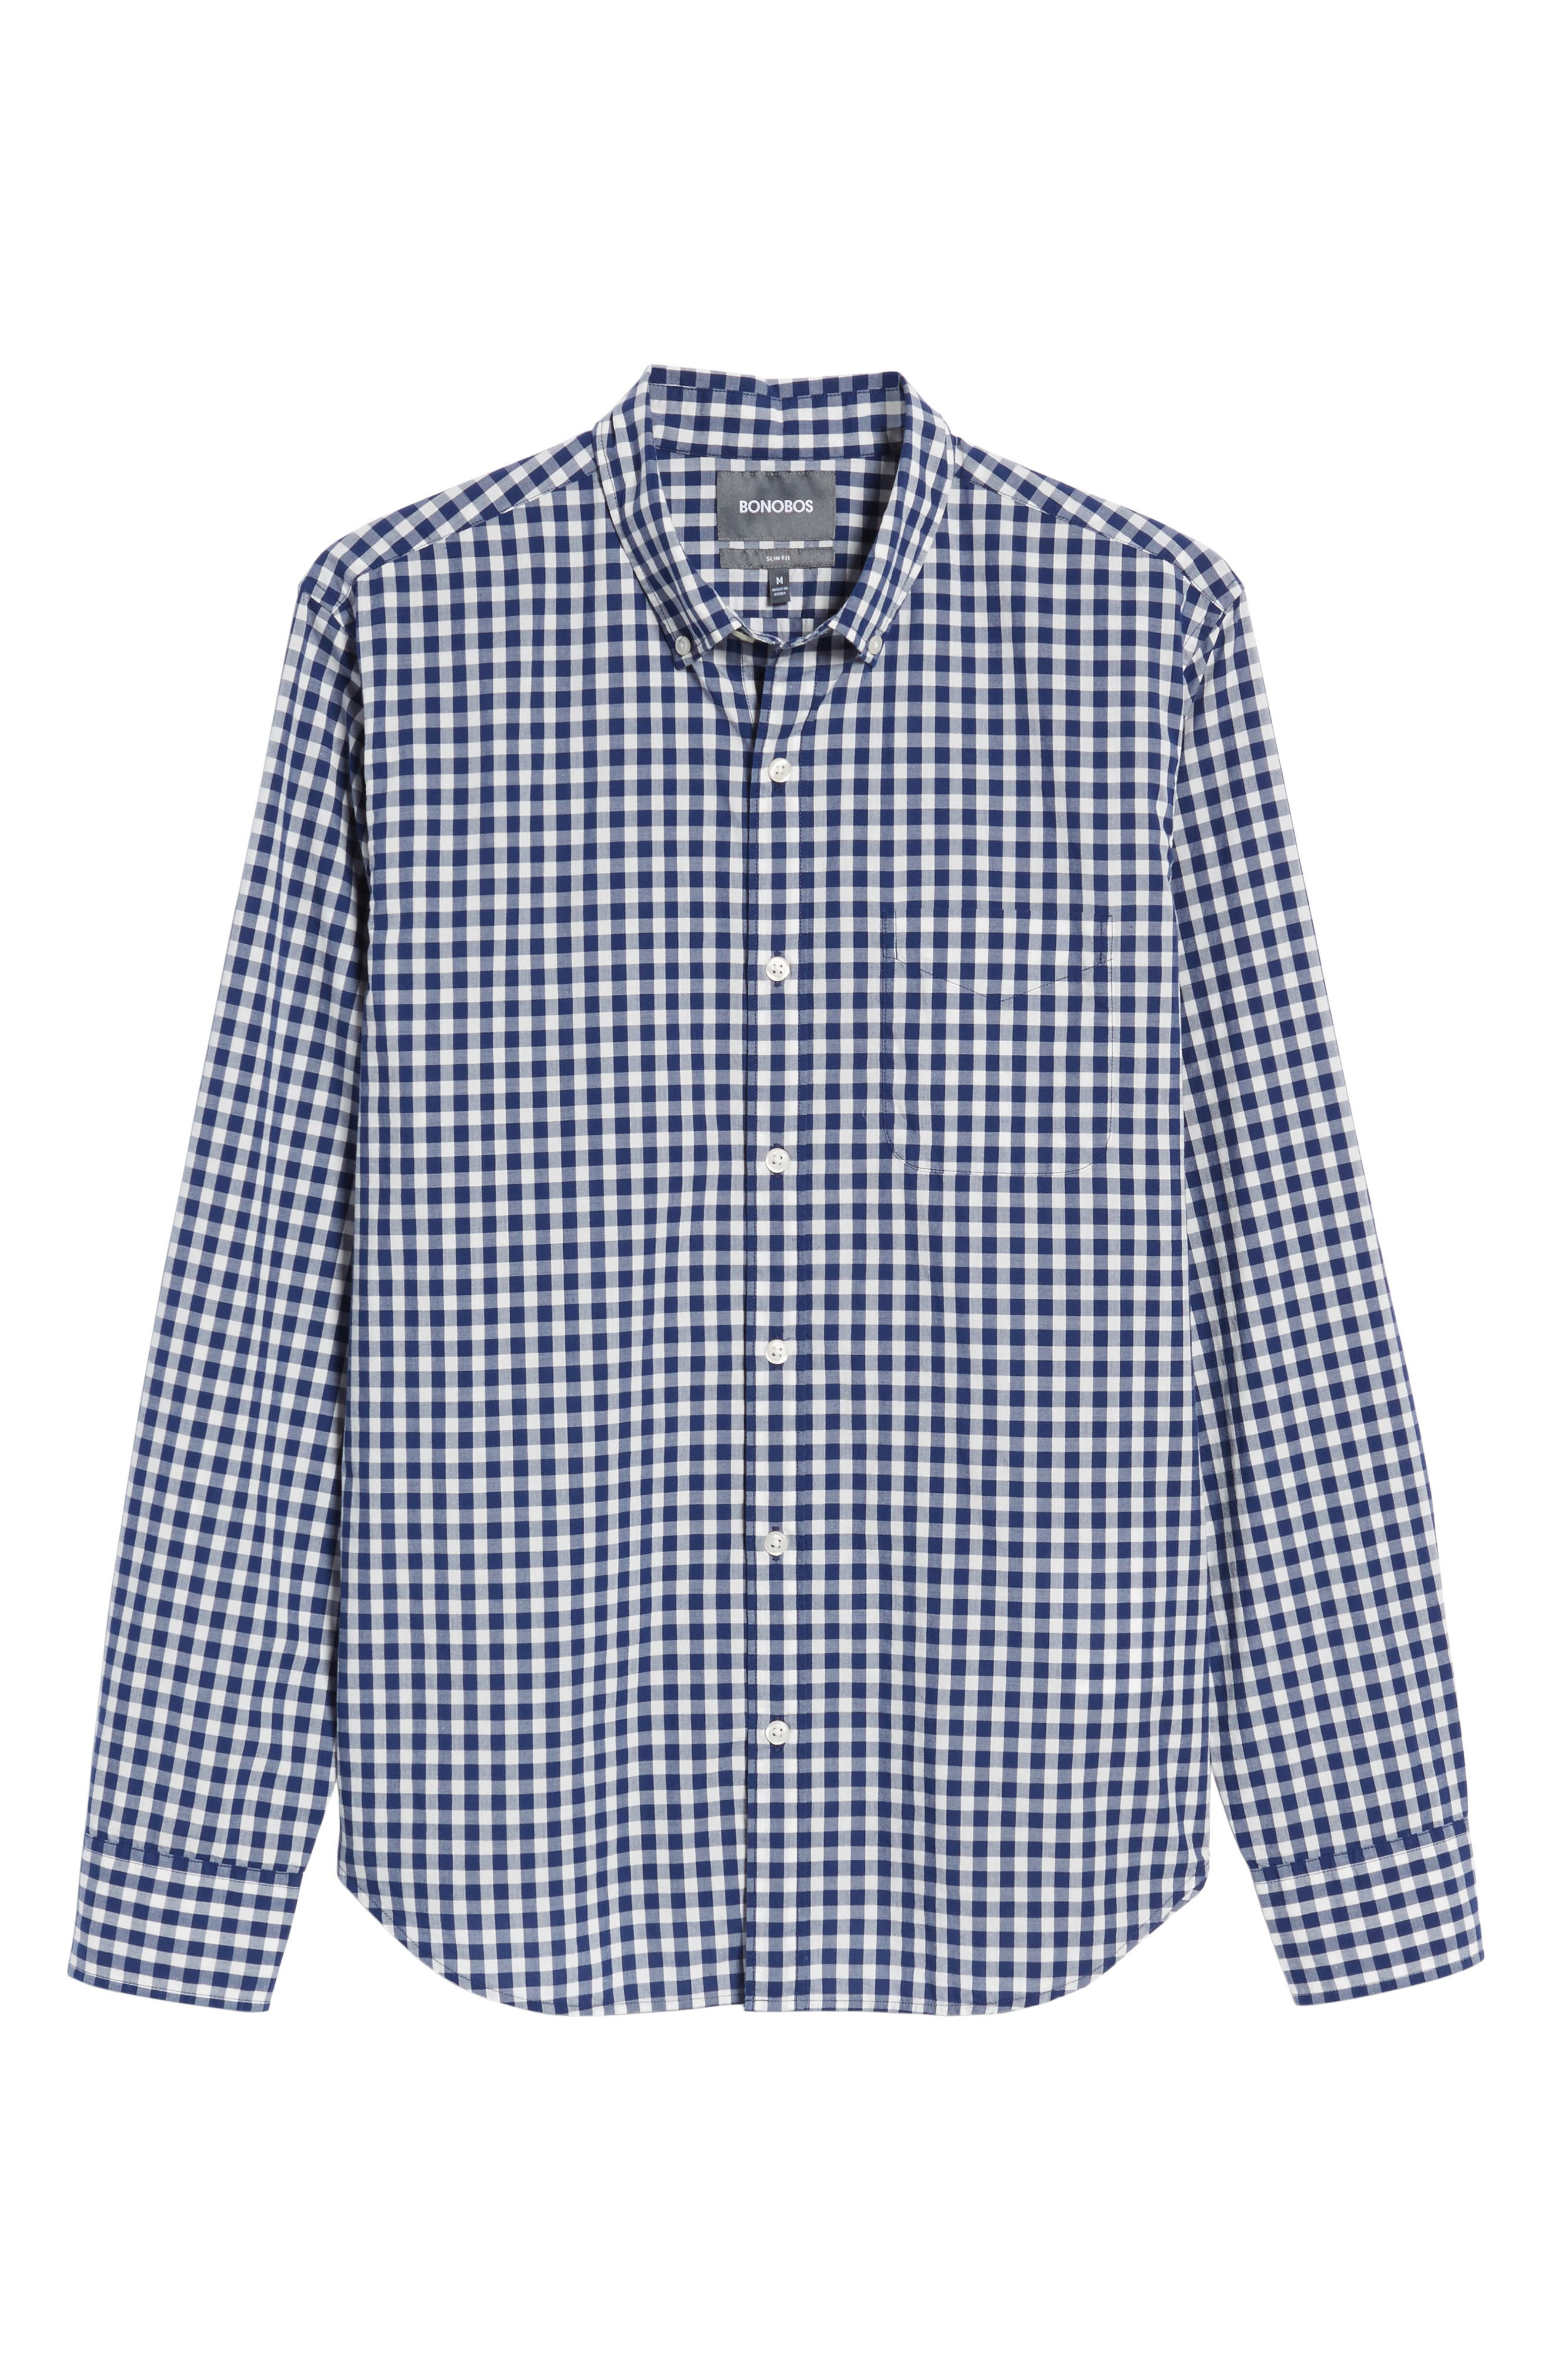 Summerweight Slim Fit Check Sport Shirt,                             Alternate thumbnail 6, color,                             Canyon Gingham - Blue Depths